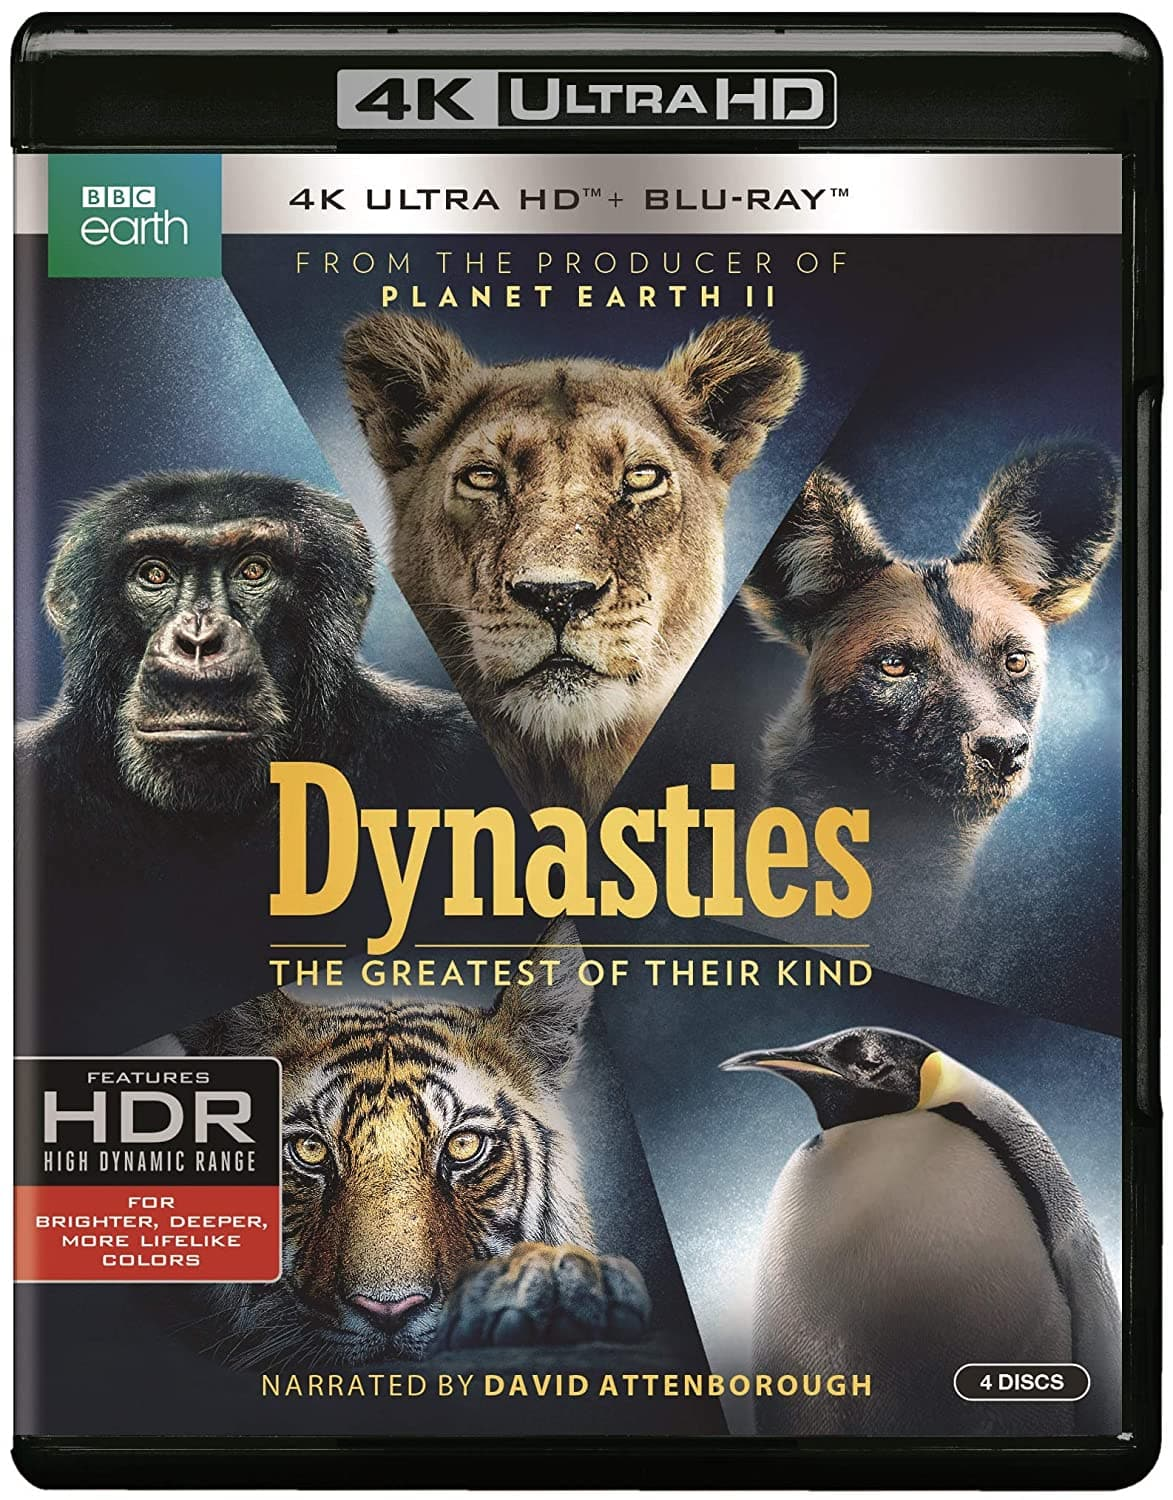 BBC Earth: Dynasties (4K UHD + Blu-Ray) $12.99 FSSS